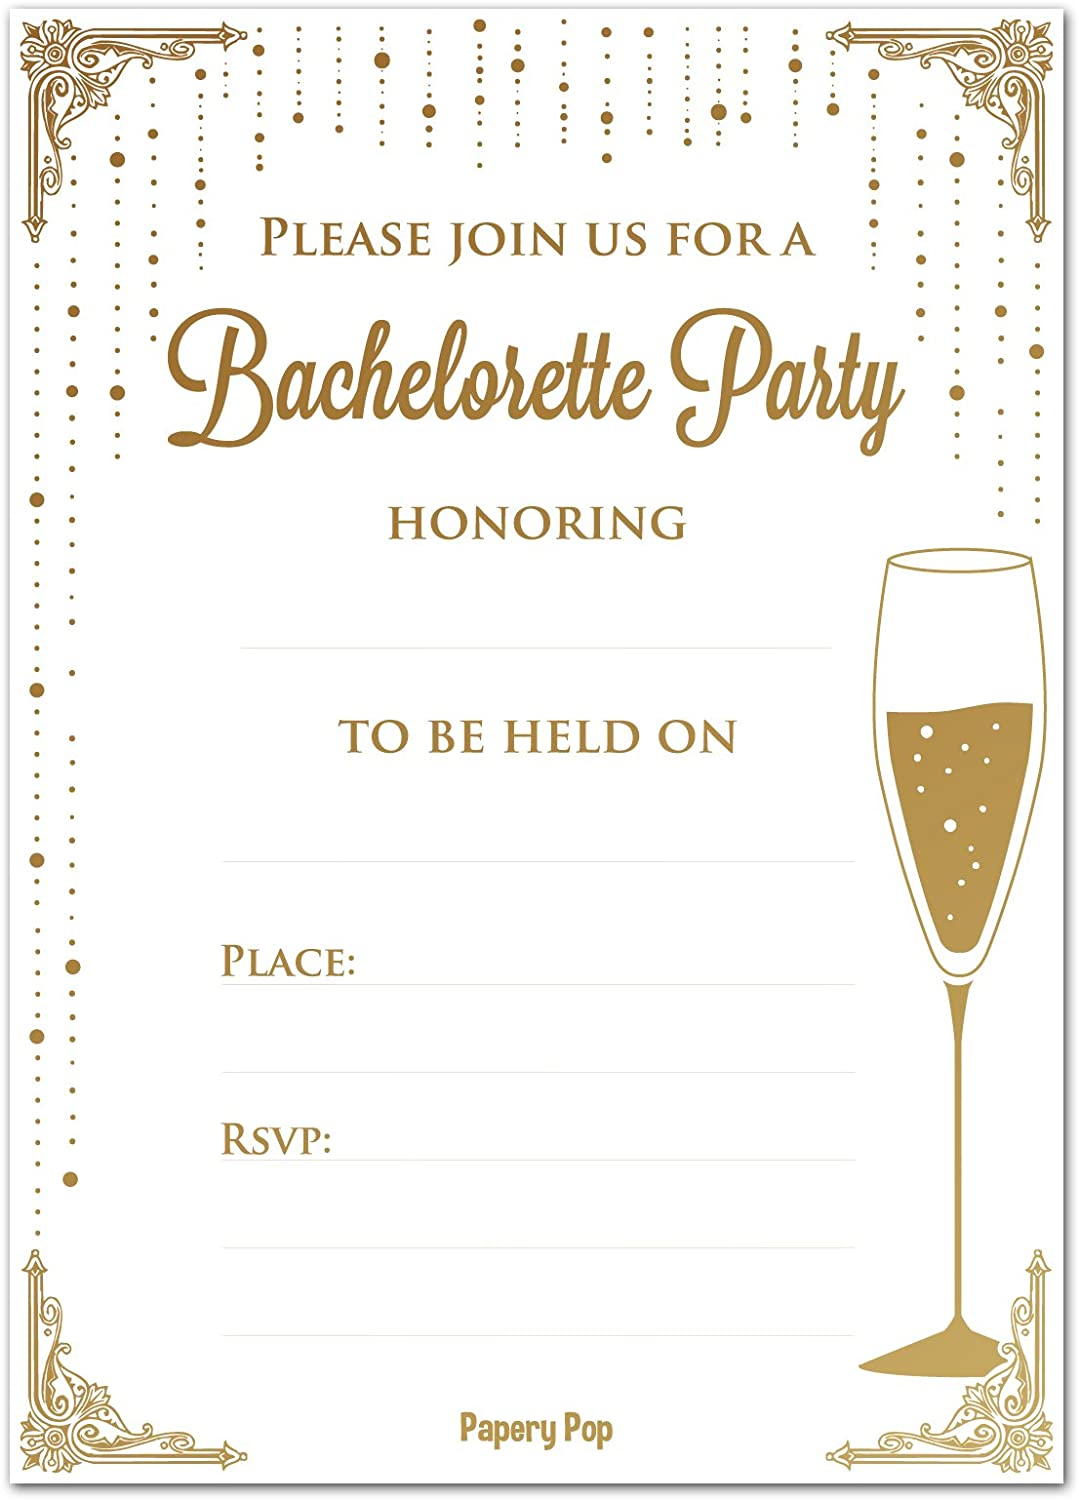 Bachelorette Party Invitations with Envelopes 15 Count Girl's Night Out Bridal Shower Hen Party Wedding Celebration Cards